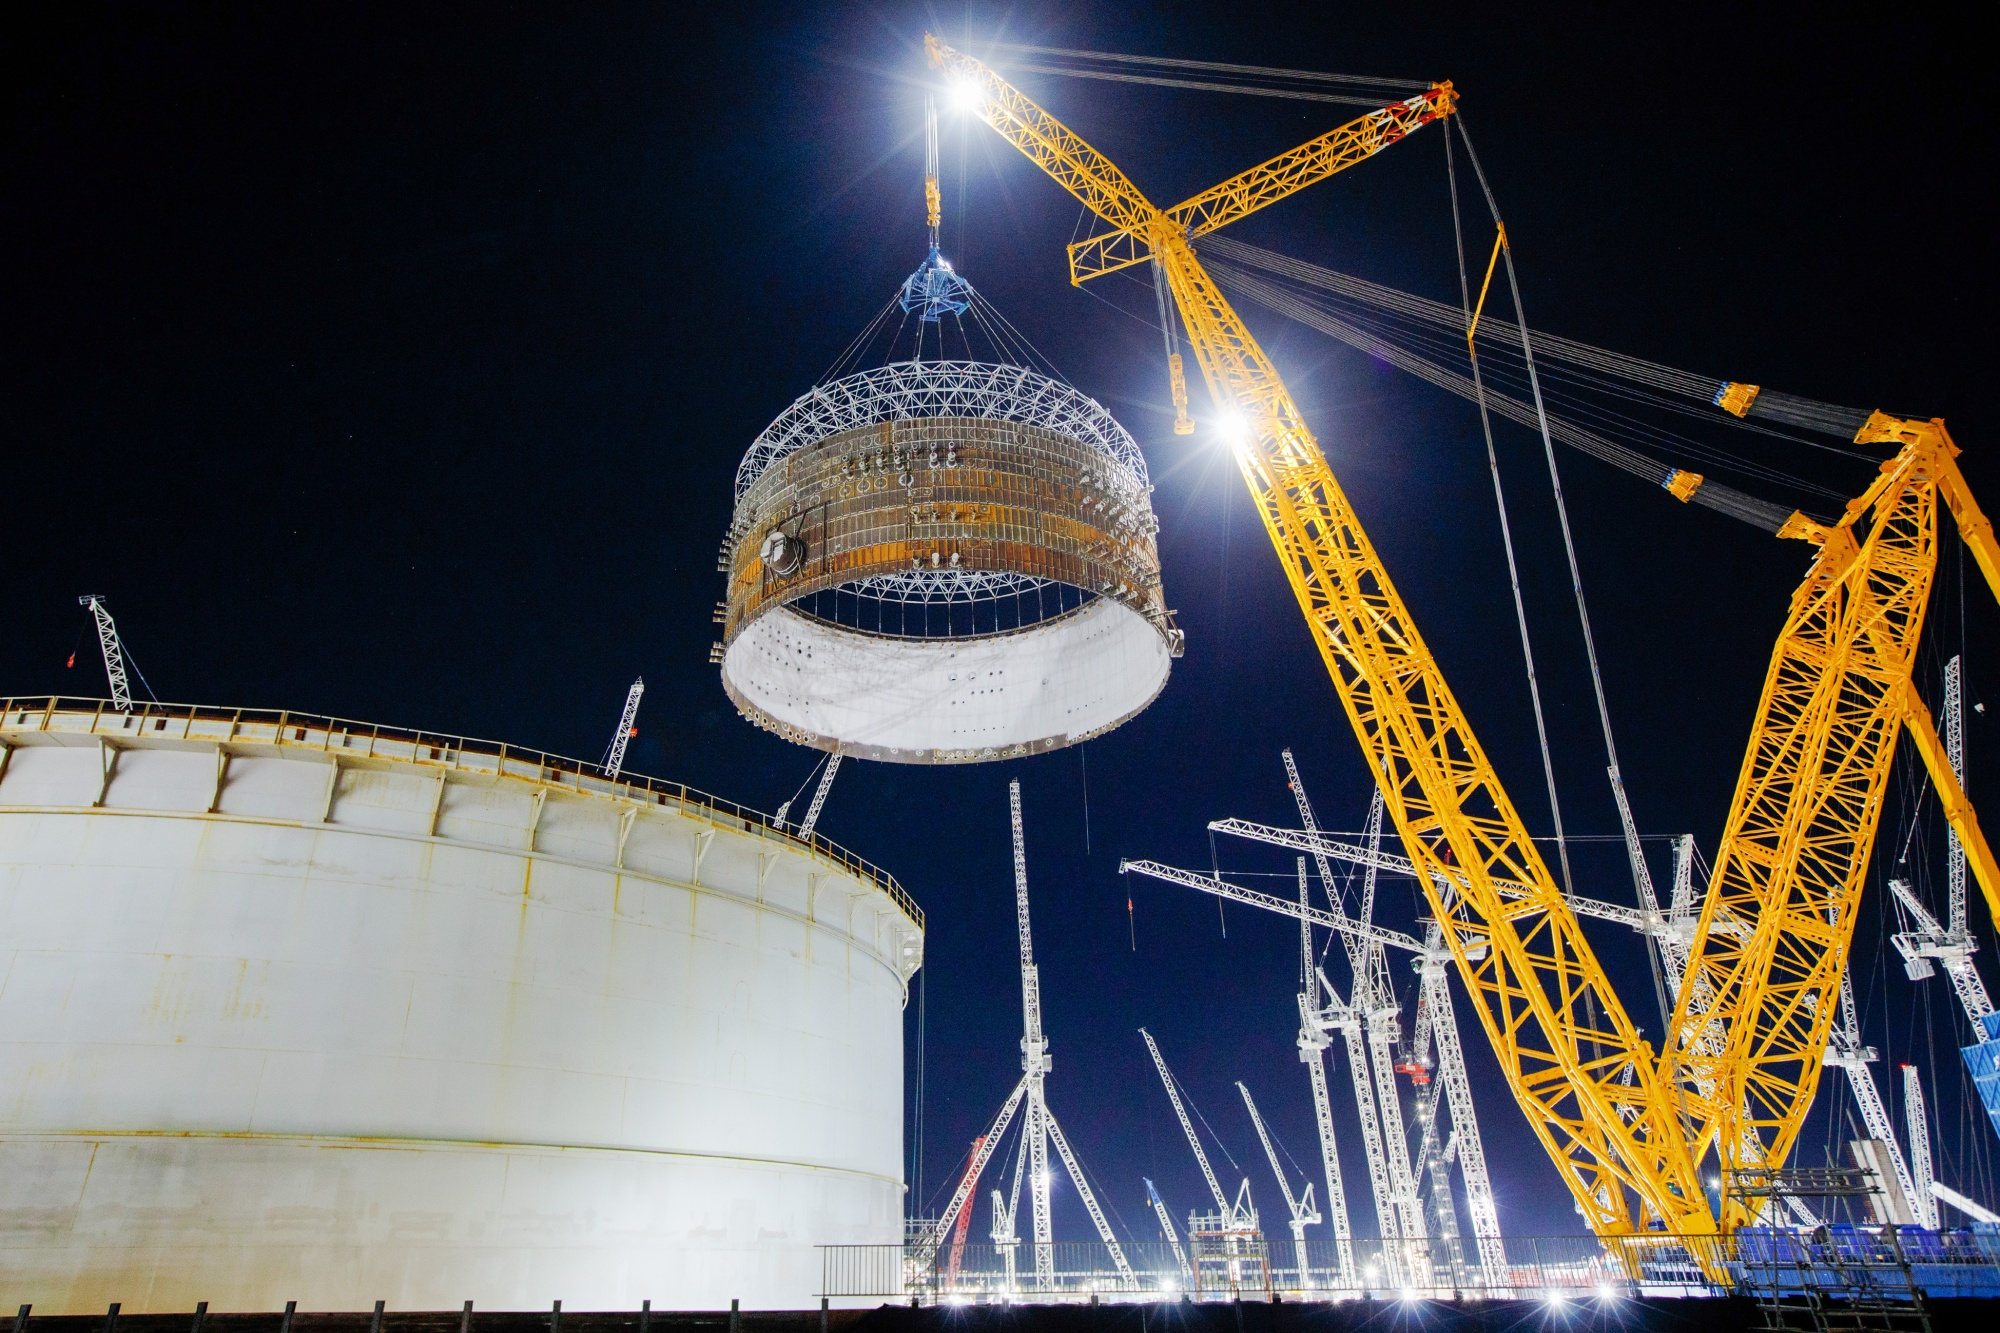 The project completion cost at Hinkley Point C is now estimated at 22 billion to 23 billion pounds.